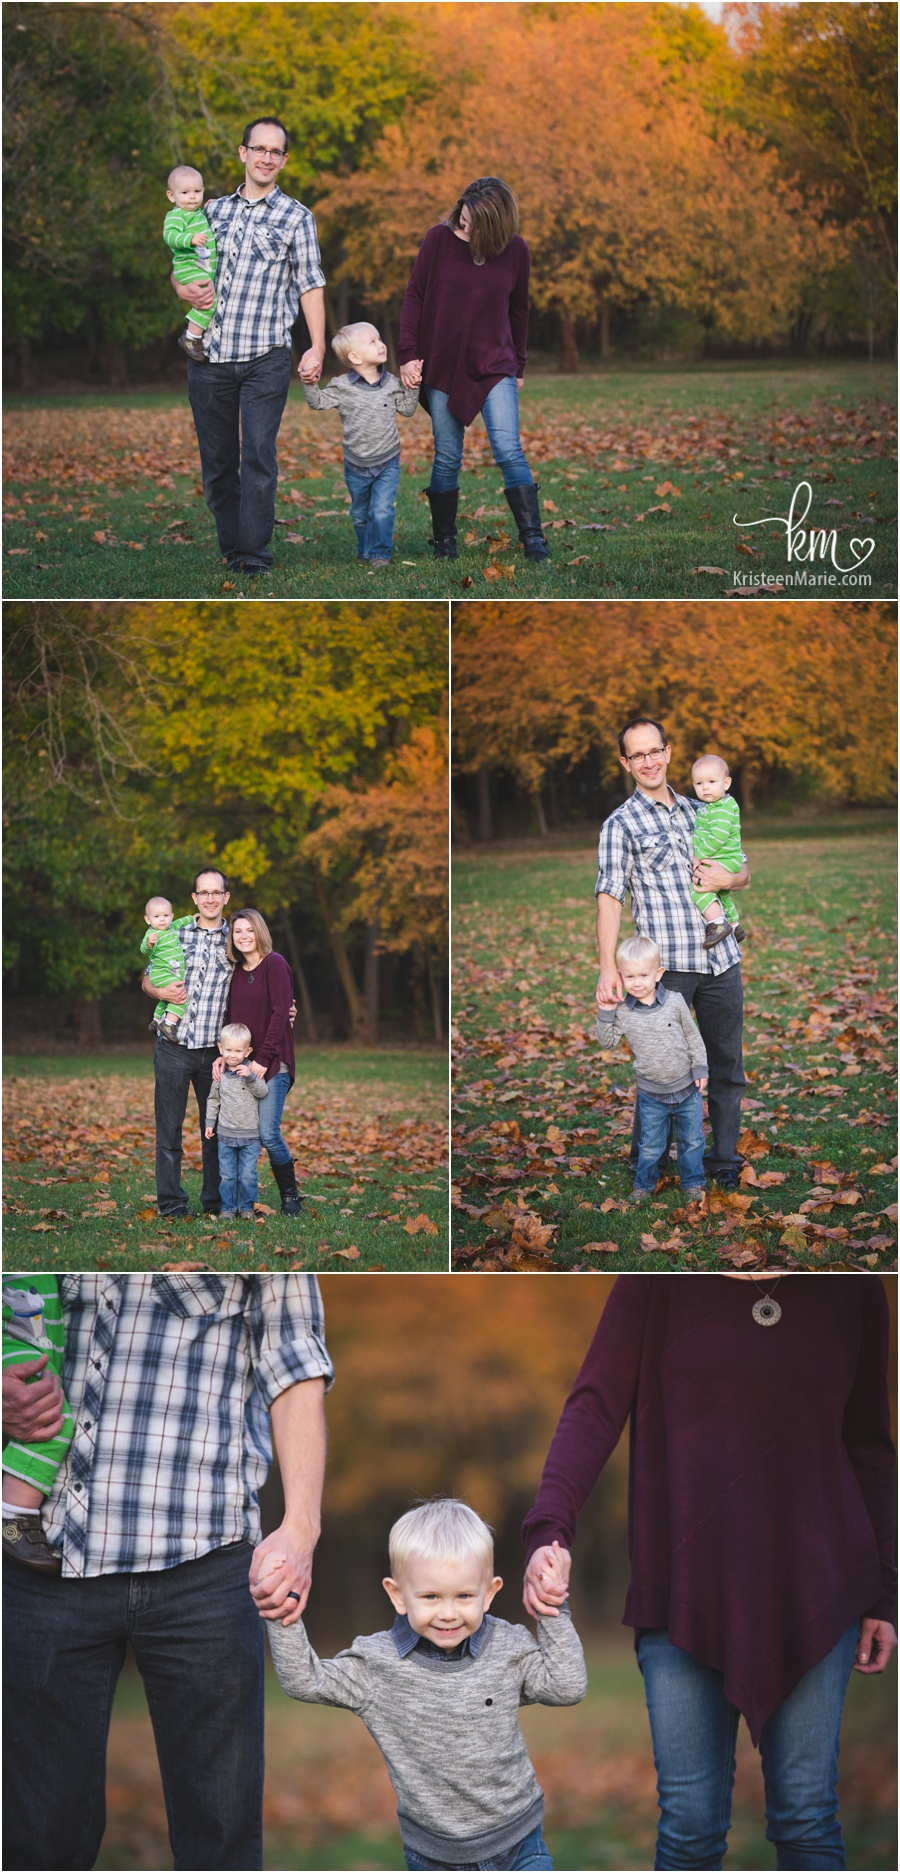 Fishers family photography in the Fall